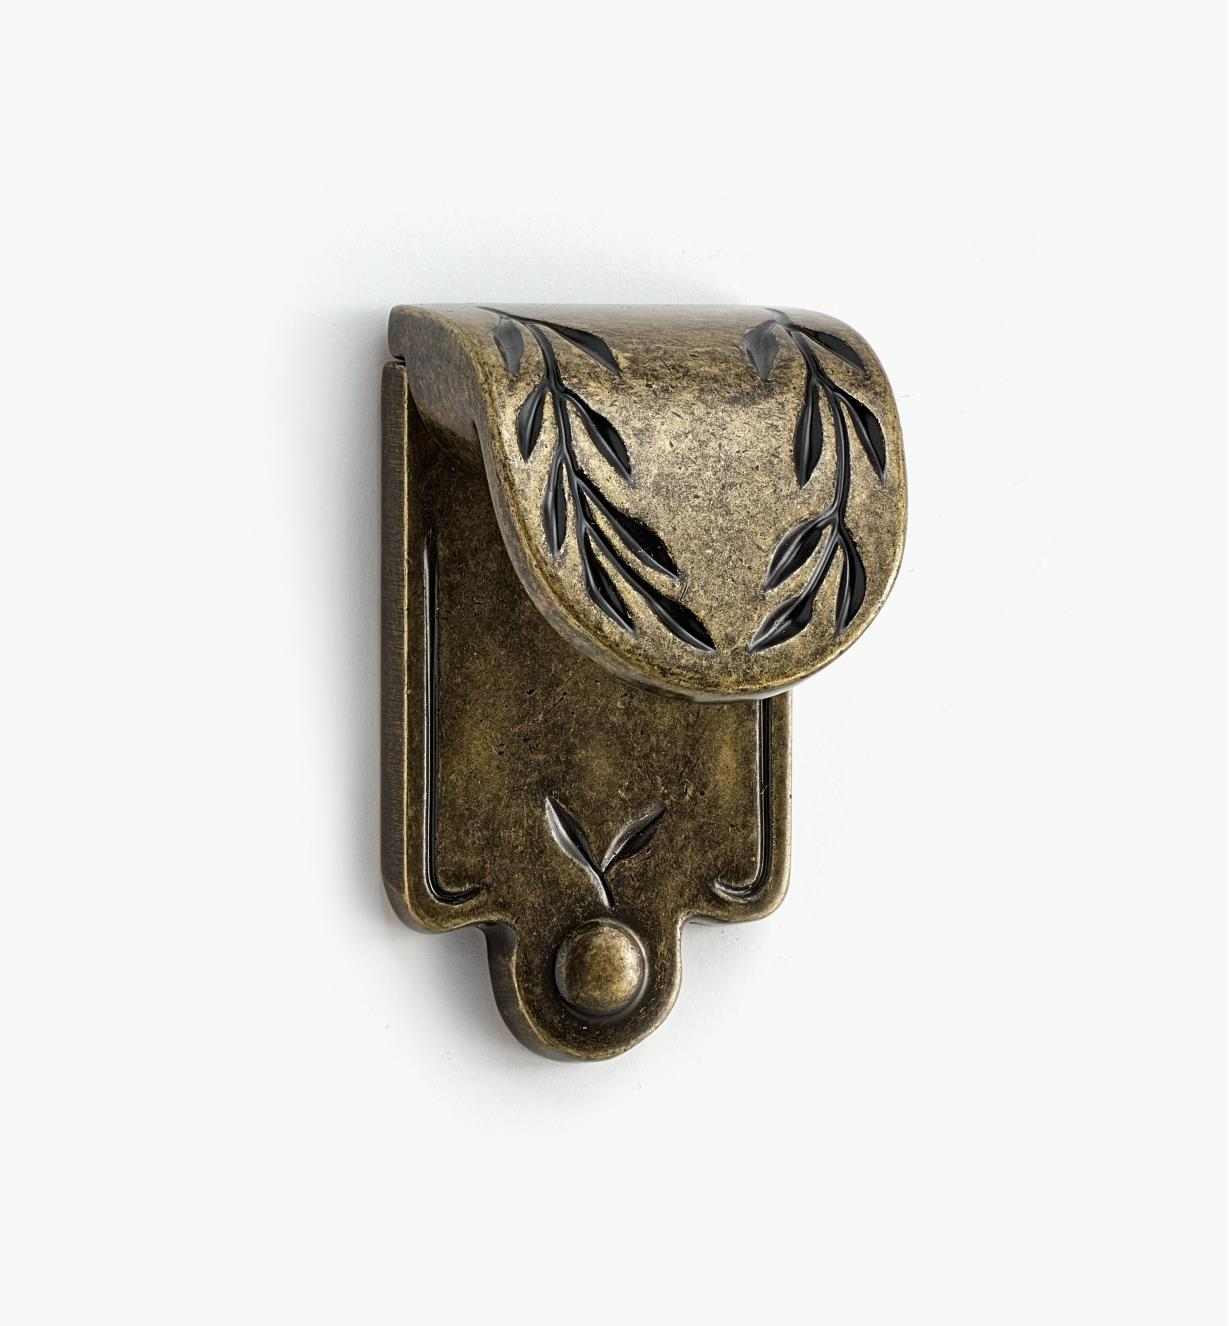 02A0503 - Leaf Finger Pull, Antique Brass